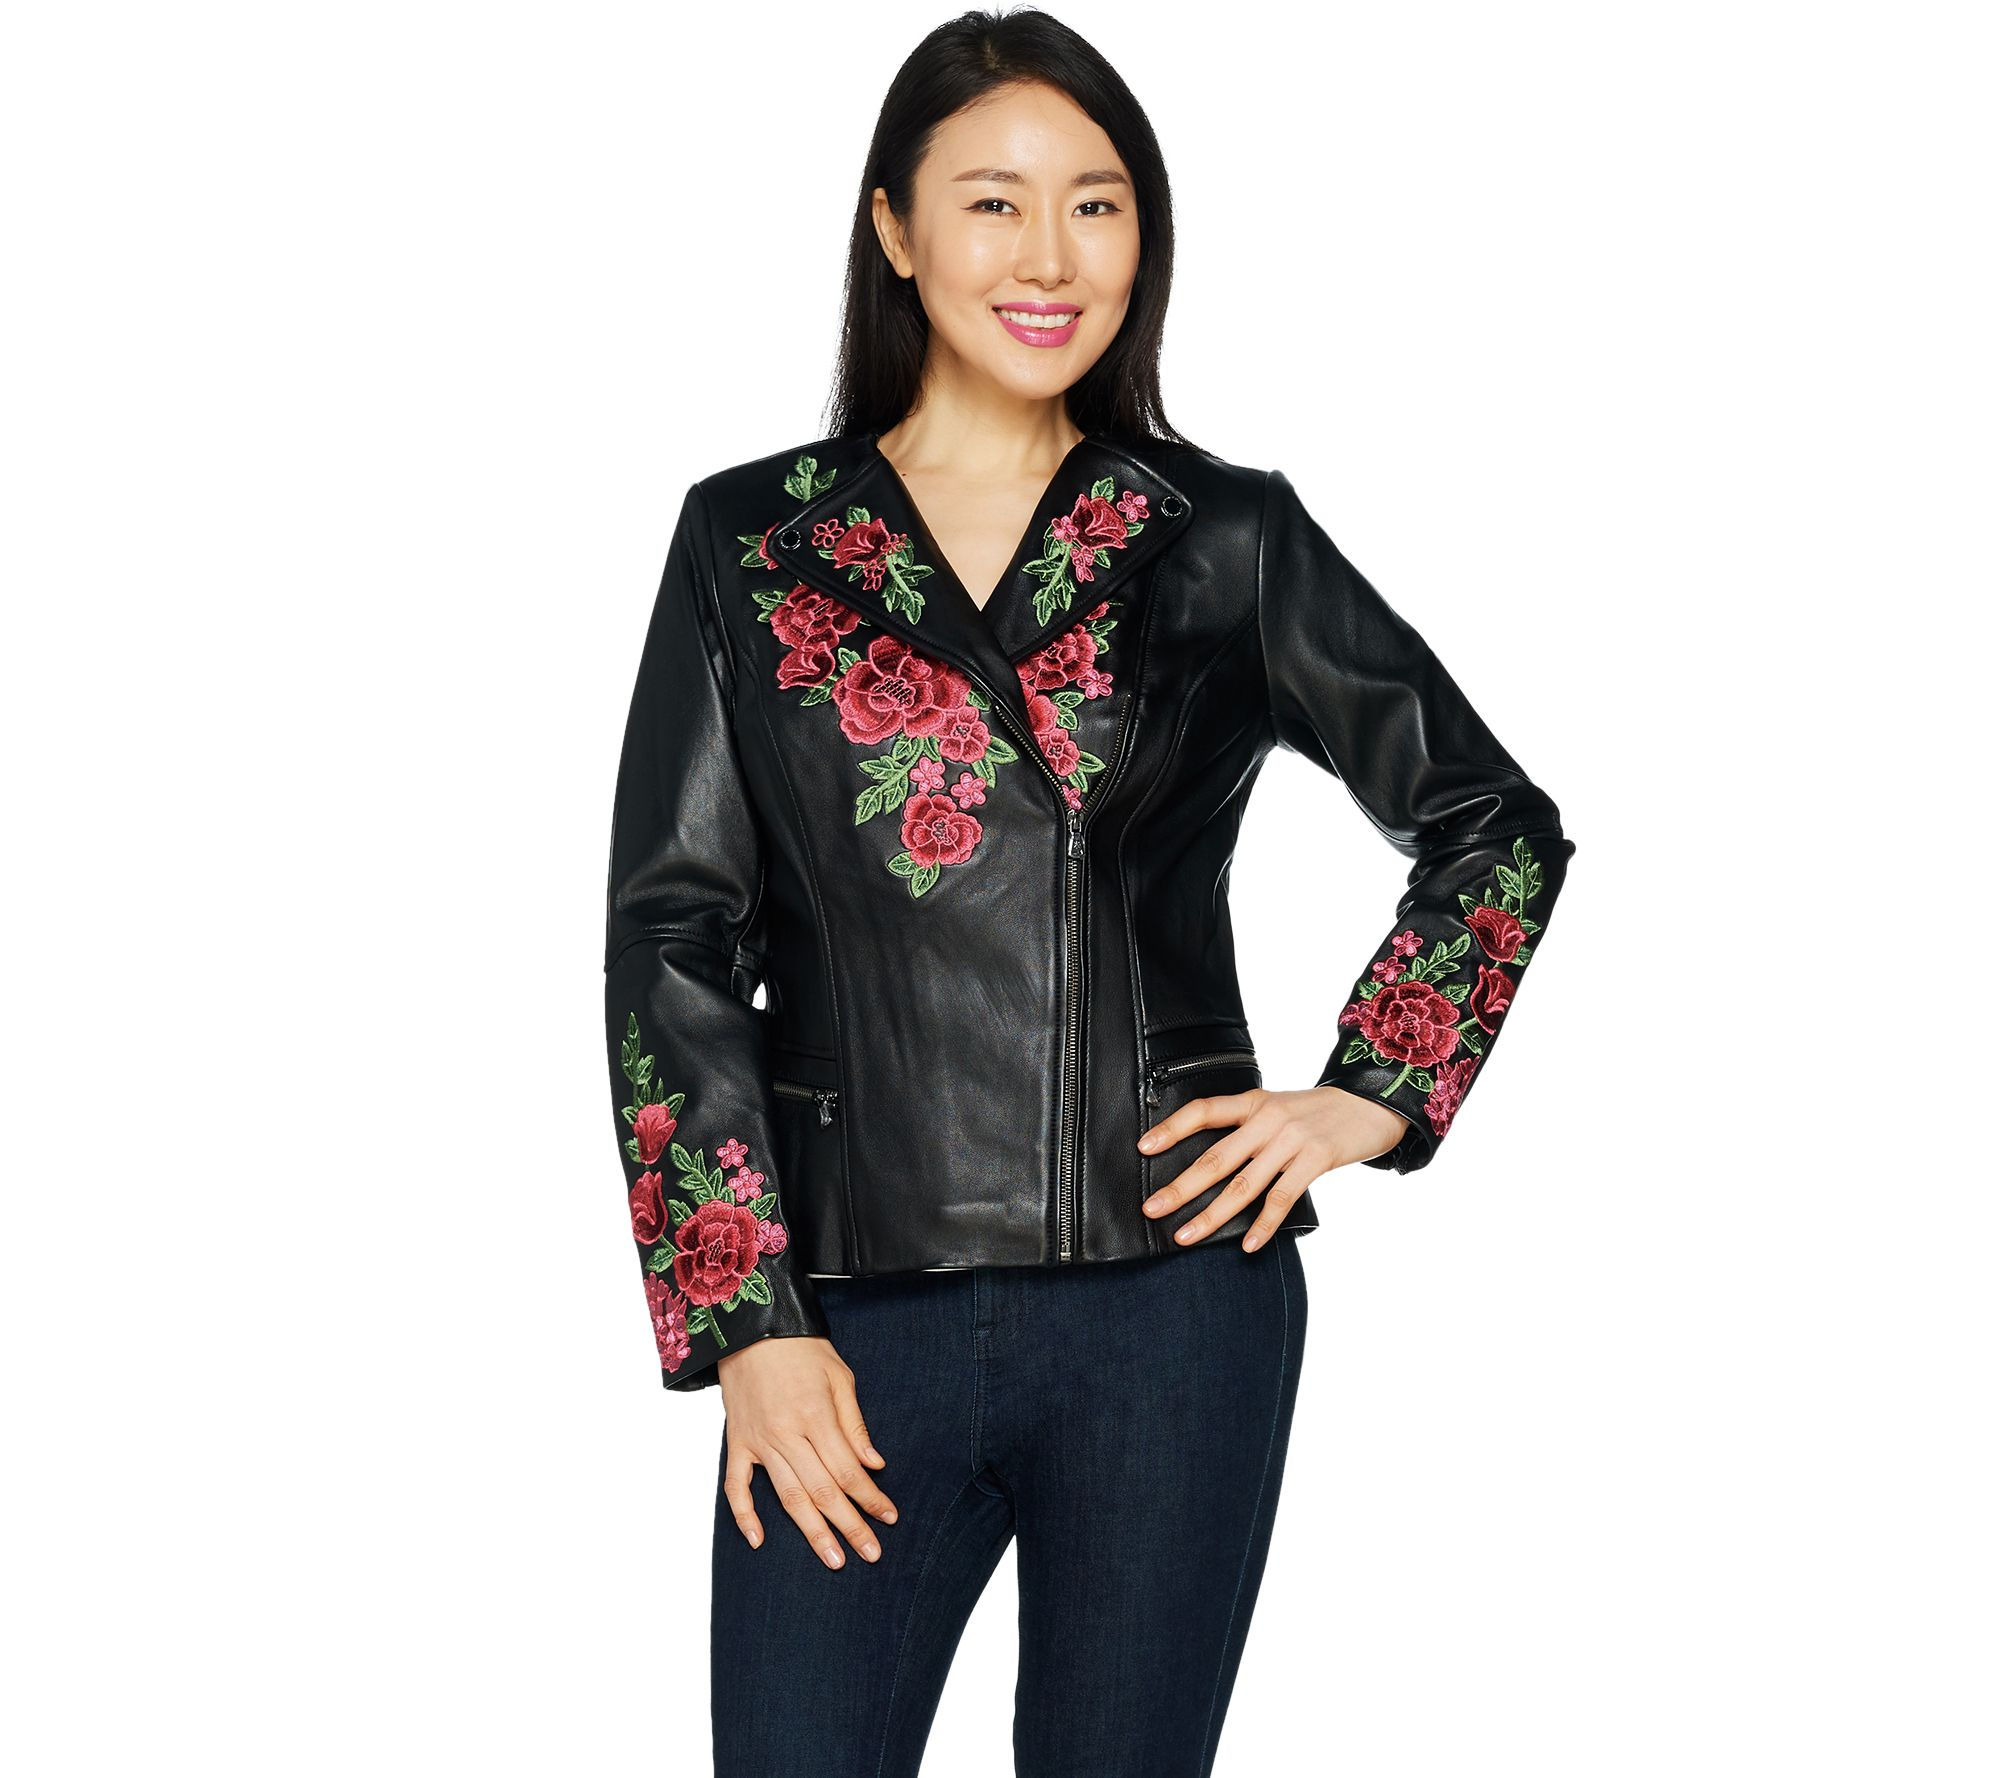 Special Edition Floral Embroidered Leather Jacket - A295816